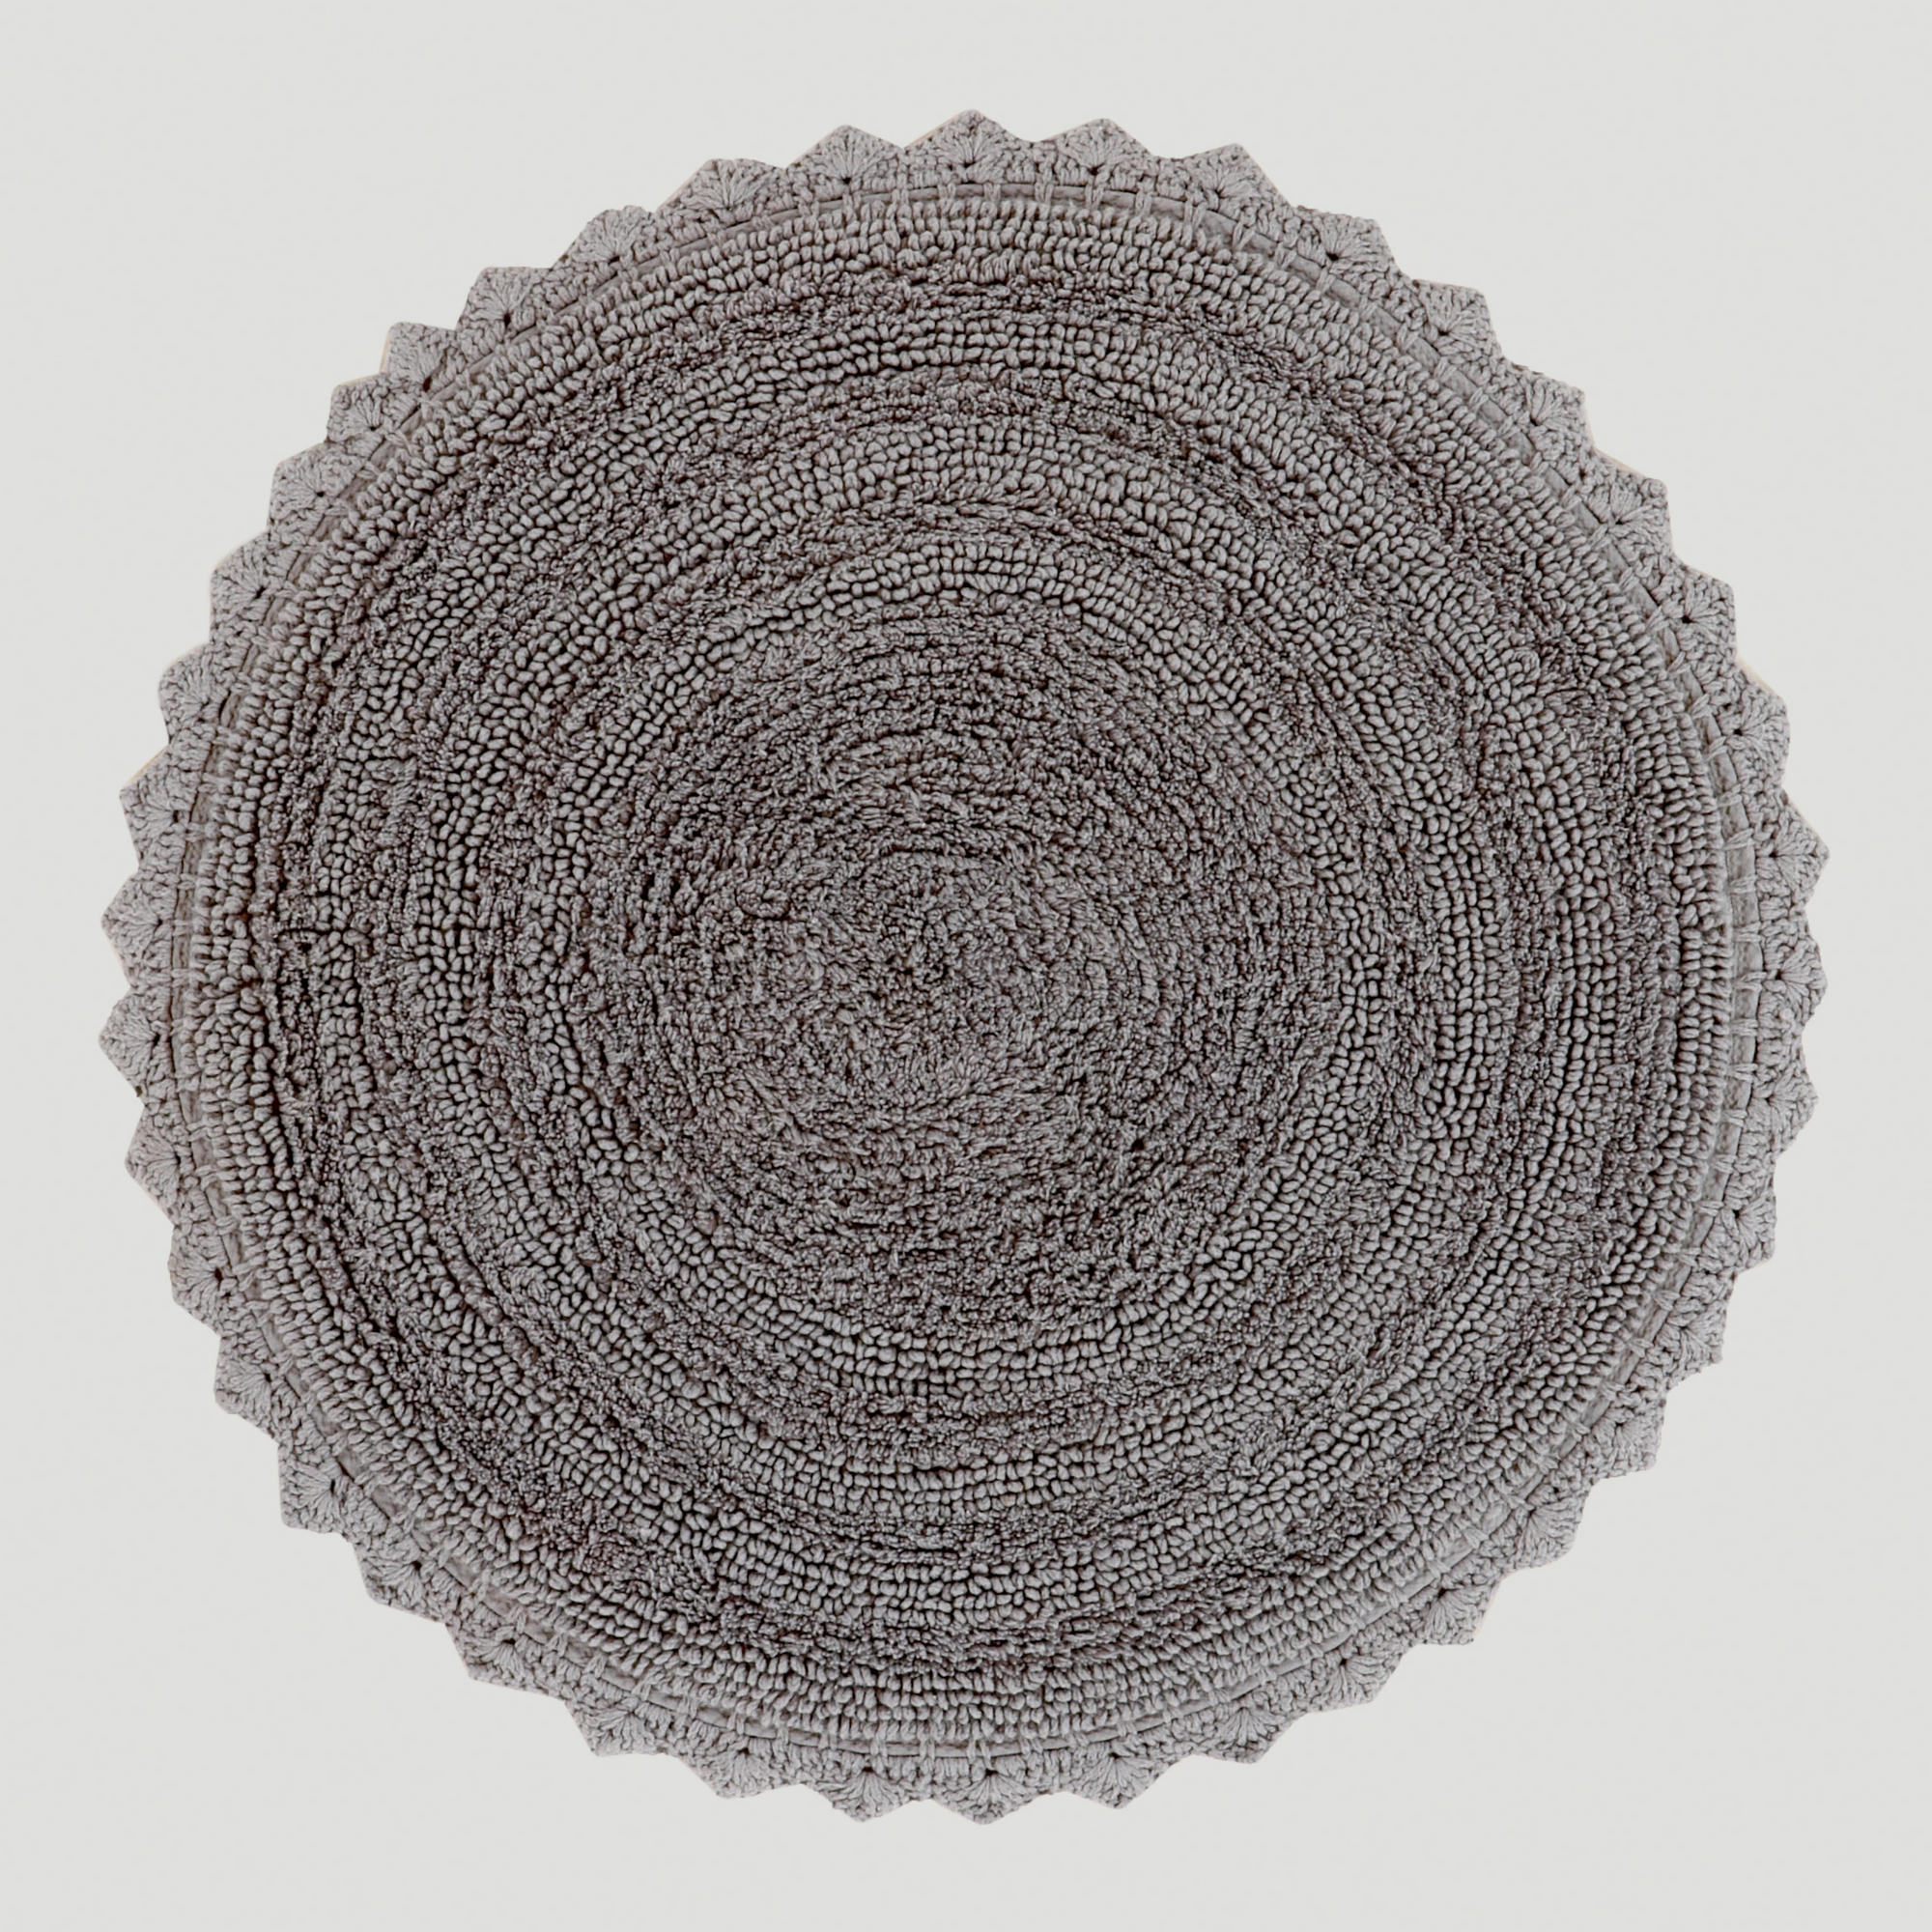 Round Bathroom Rugs Purplefrost gray round bath mat colors purple and gray